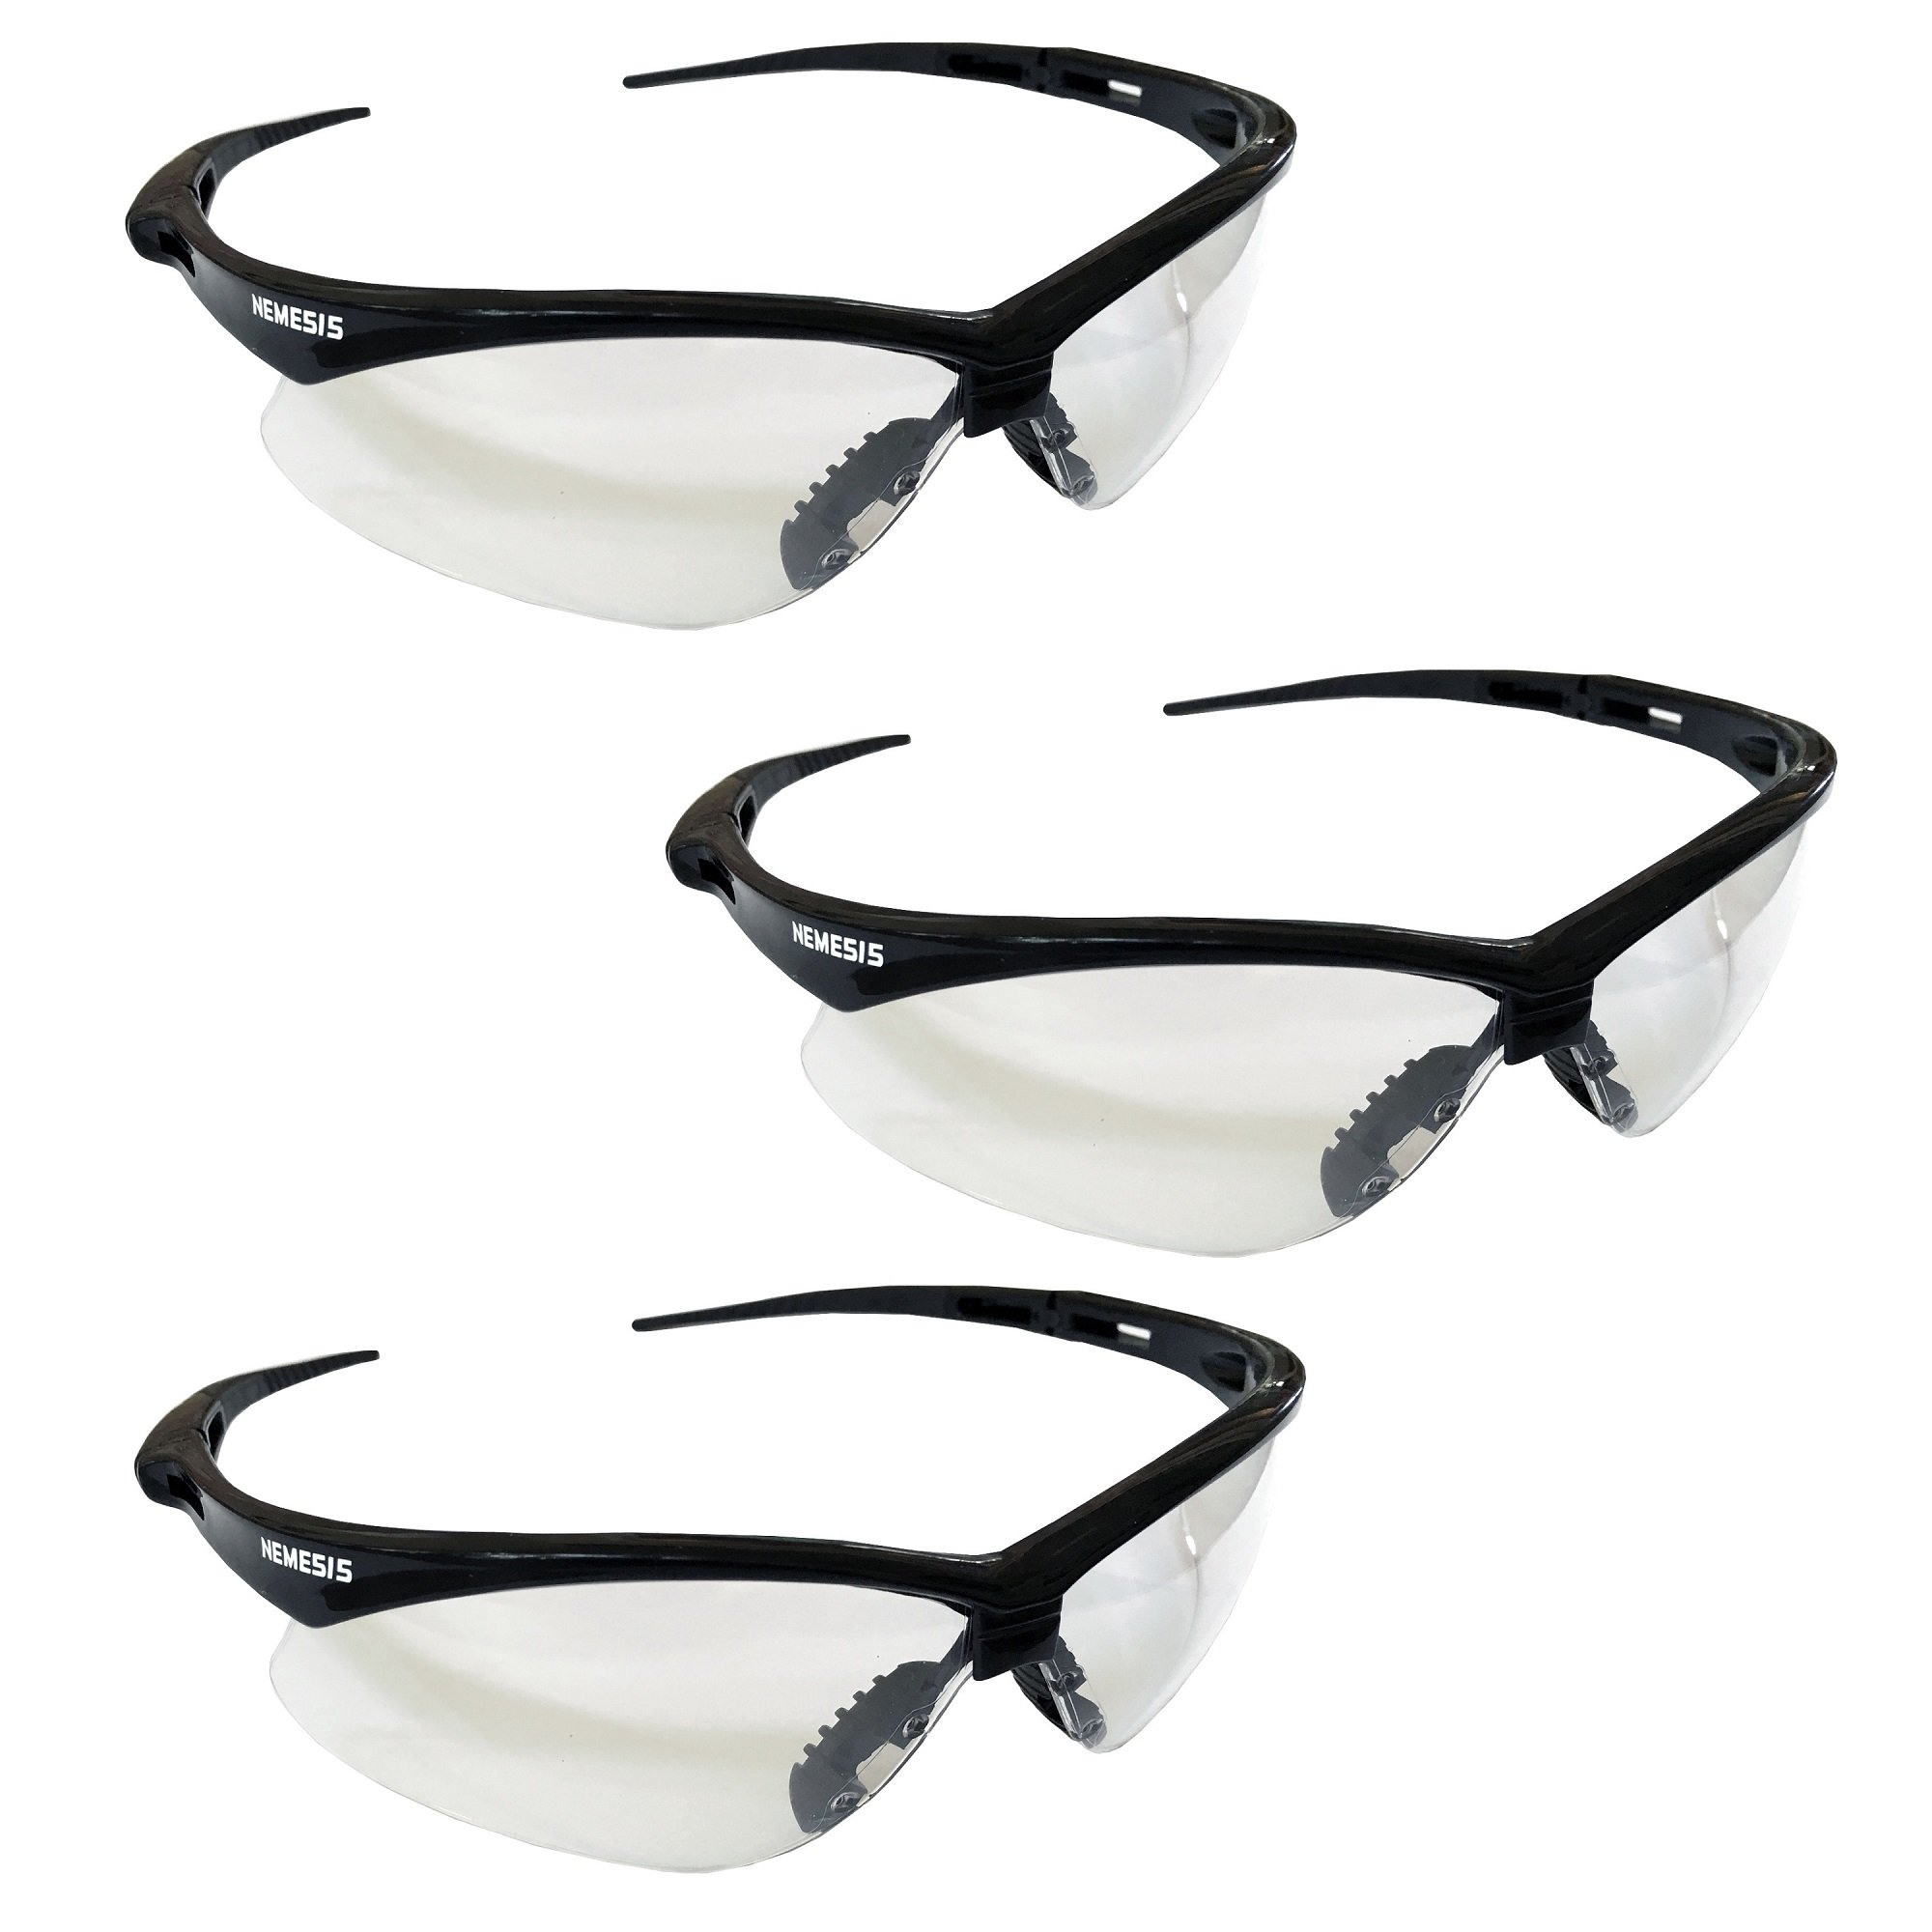 3 Pair Jackson Nemesis 3000354 Safety Glasses Black Frame Clear Lens Kimberly Clark 25676